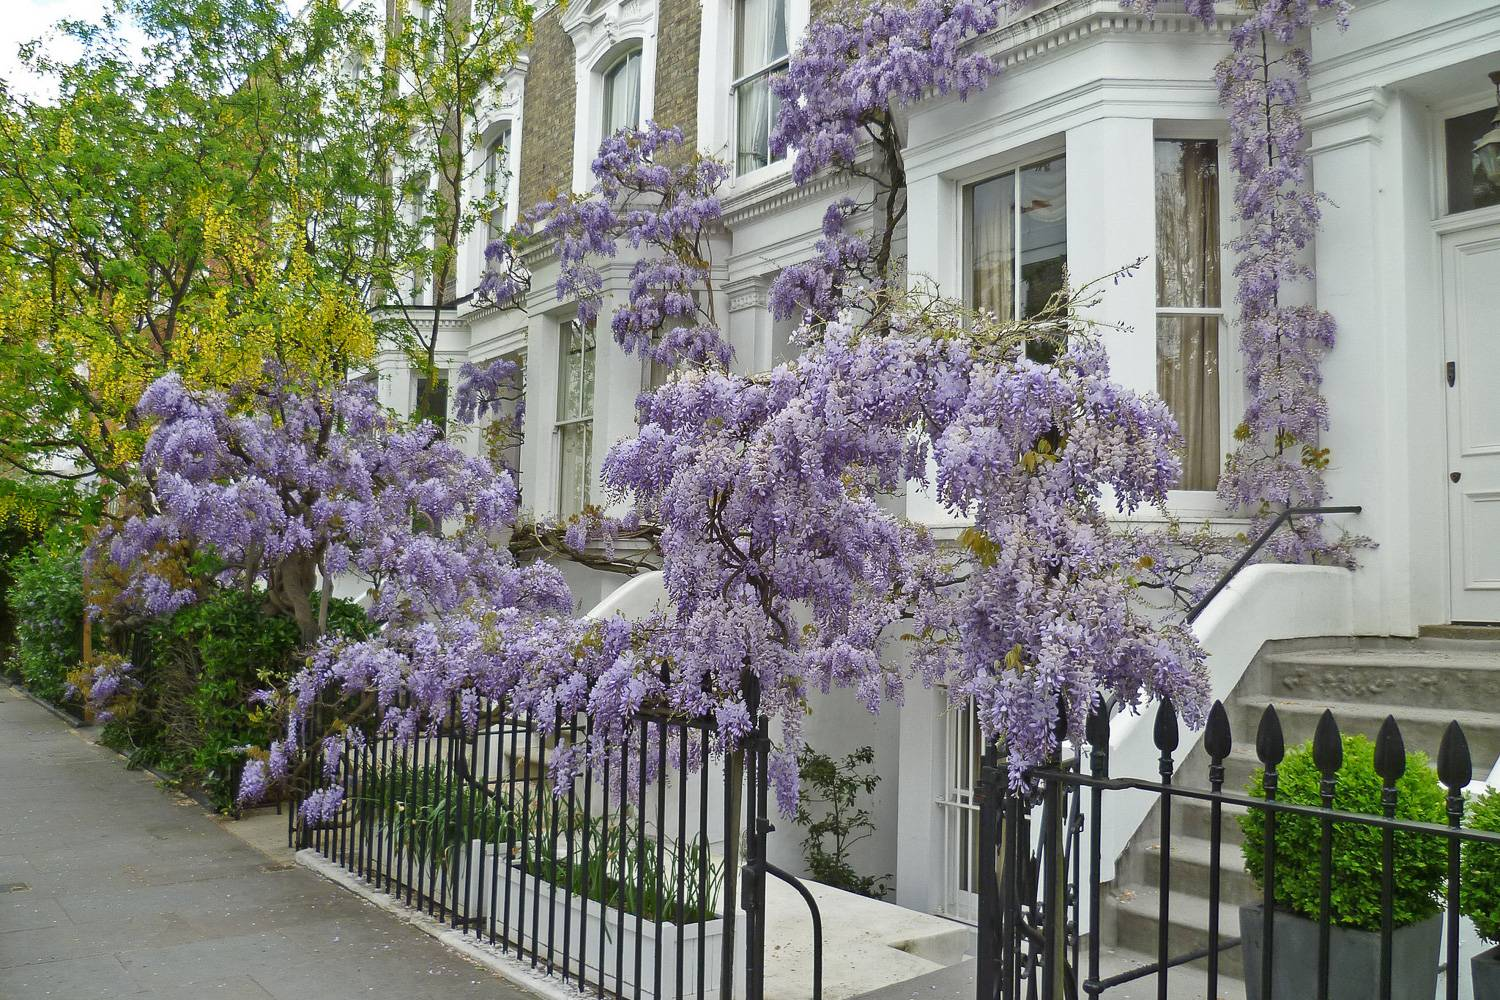 Image of purple wisteria blooming in front of a Kensington townhouse in London.